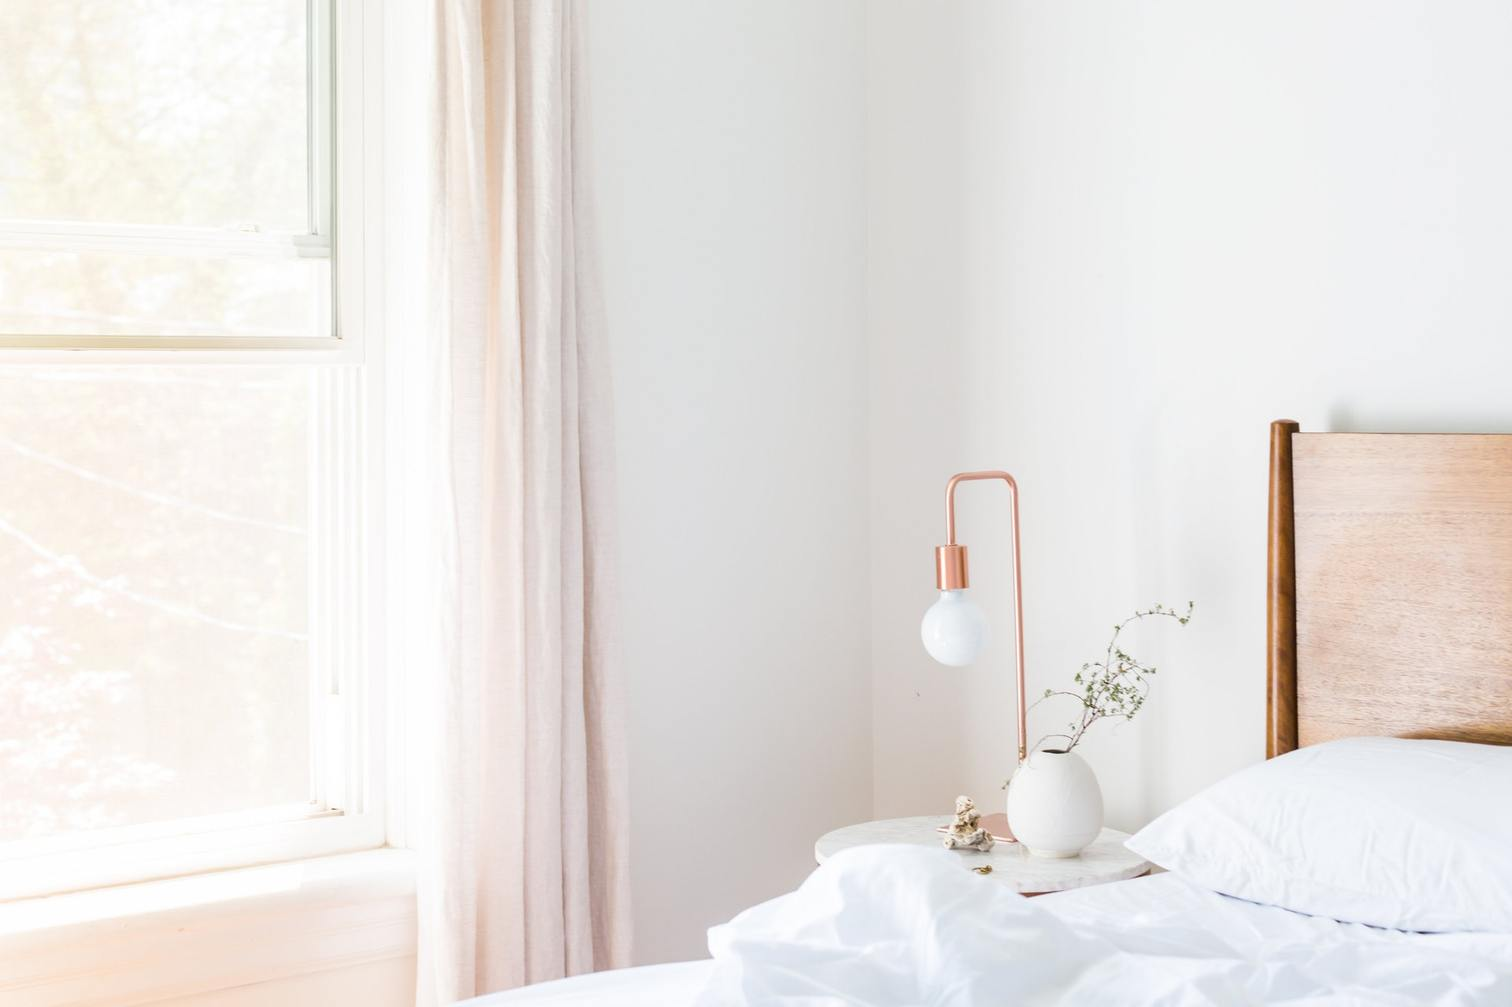 The ideal bedroom (according to Feng Shui)